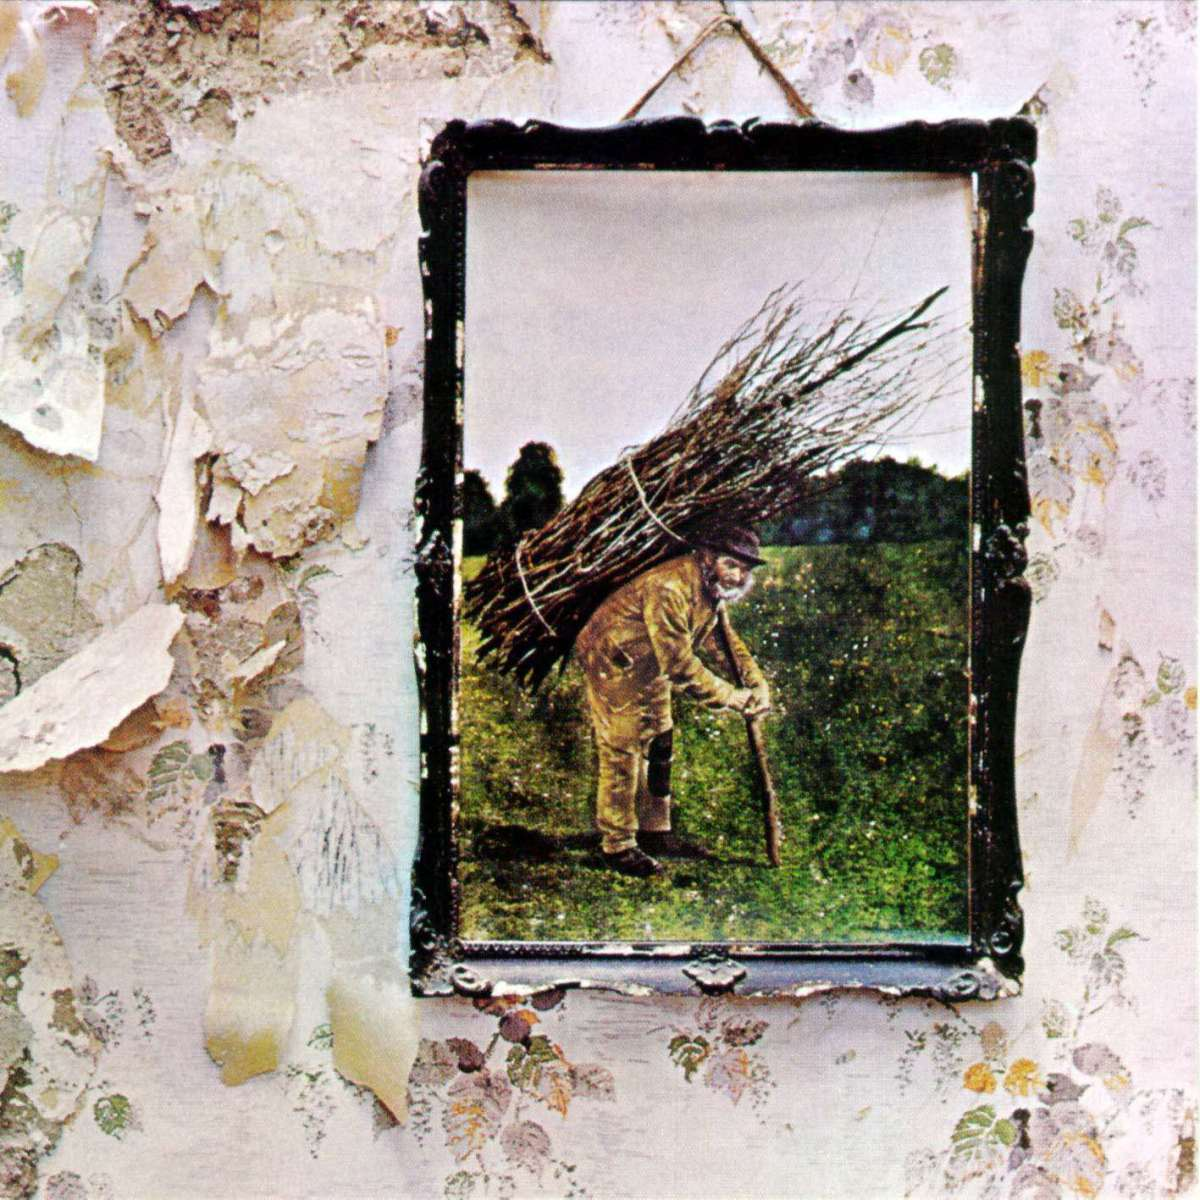 Stairway to Heaven from the Album LED ZEPPELIN IV